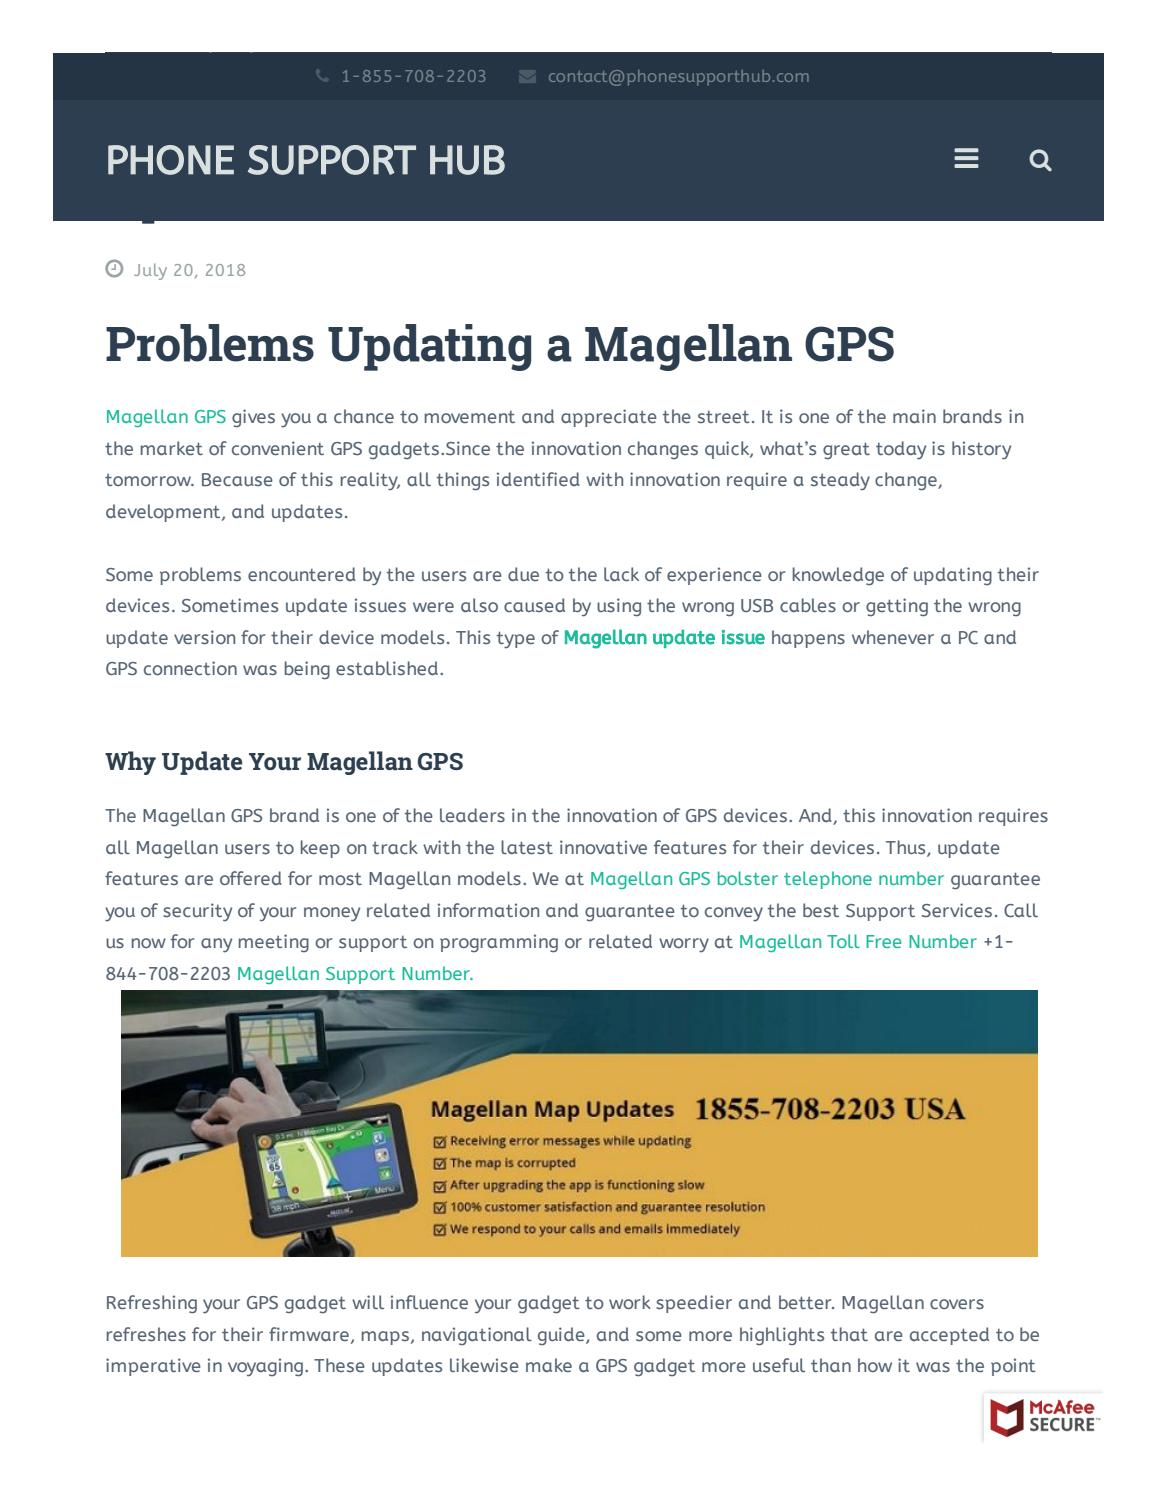 How To Overcome With Magellan Gps Update Problemsanne Smith - Issuu - Magellan Gps Usb Wiring Diagram